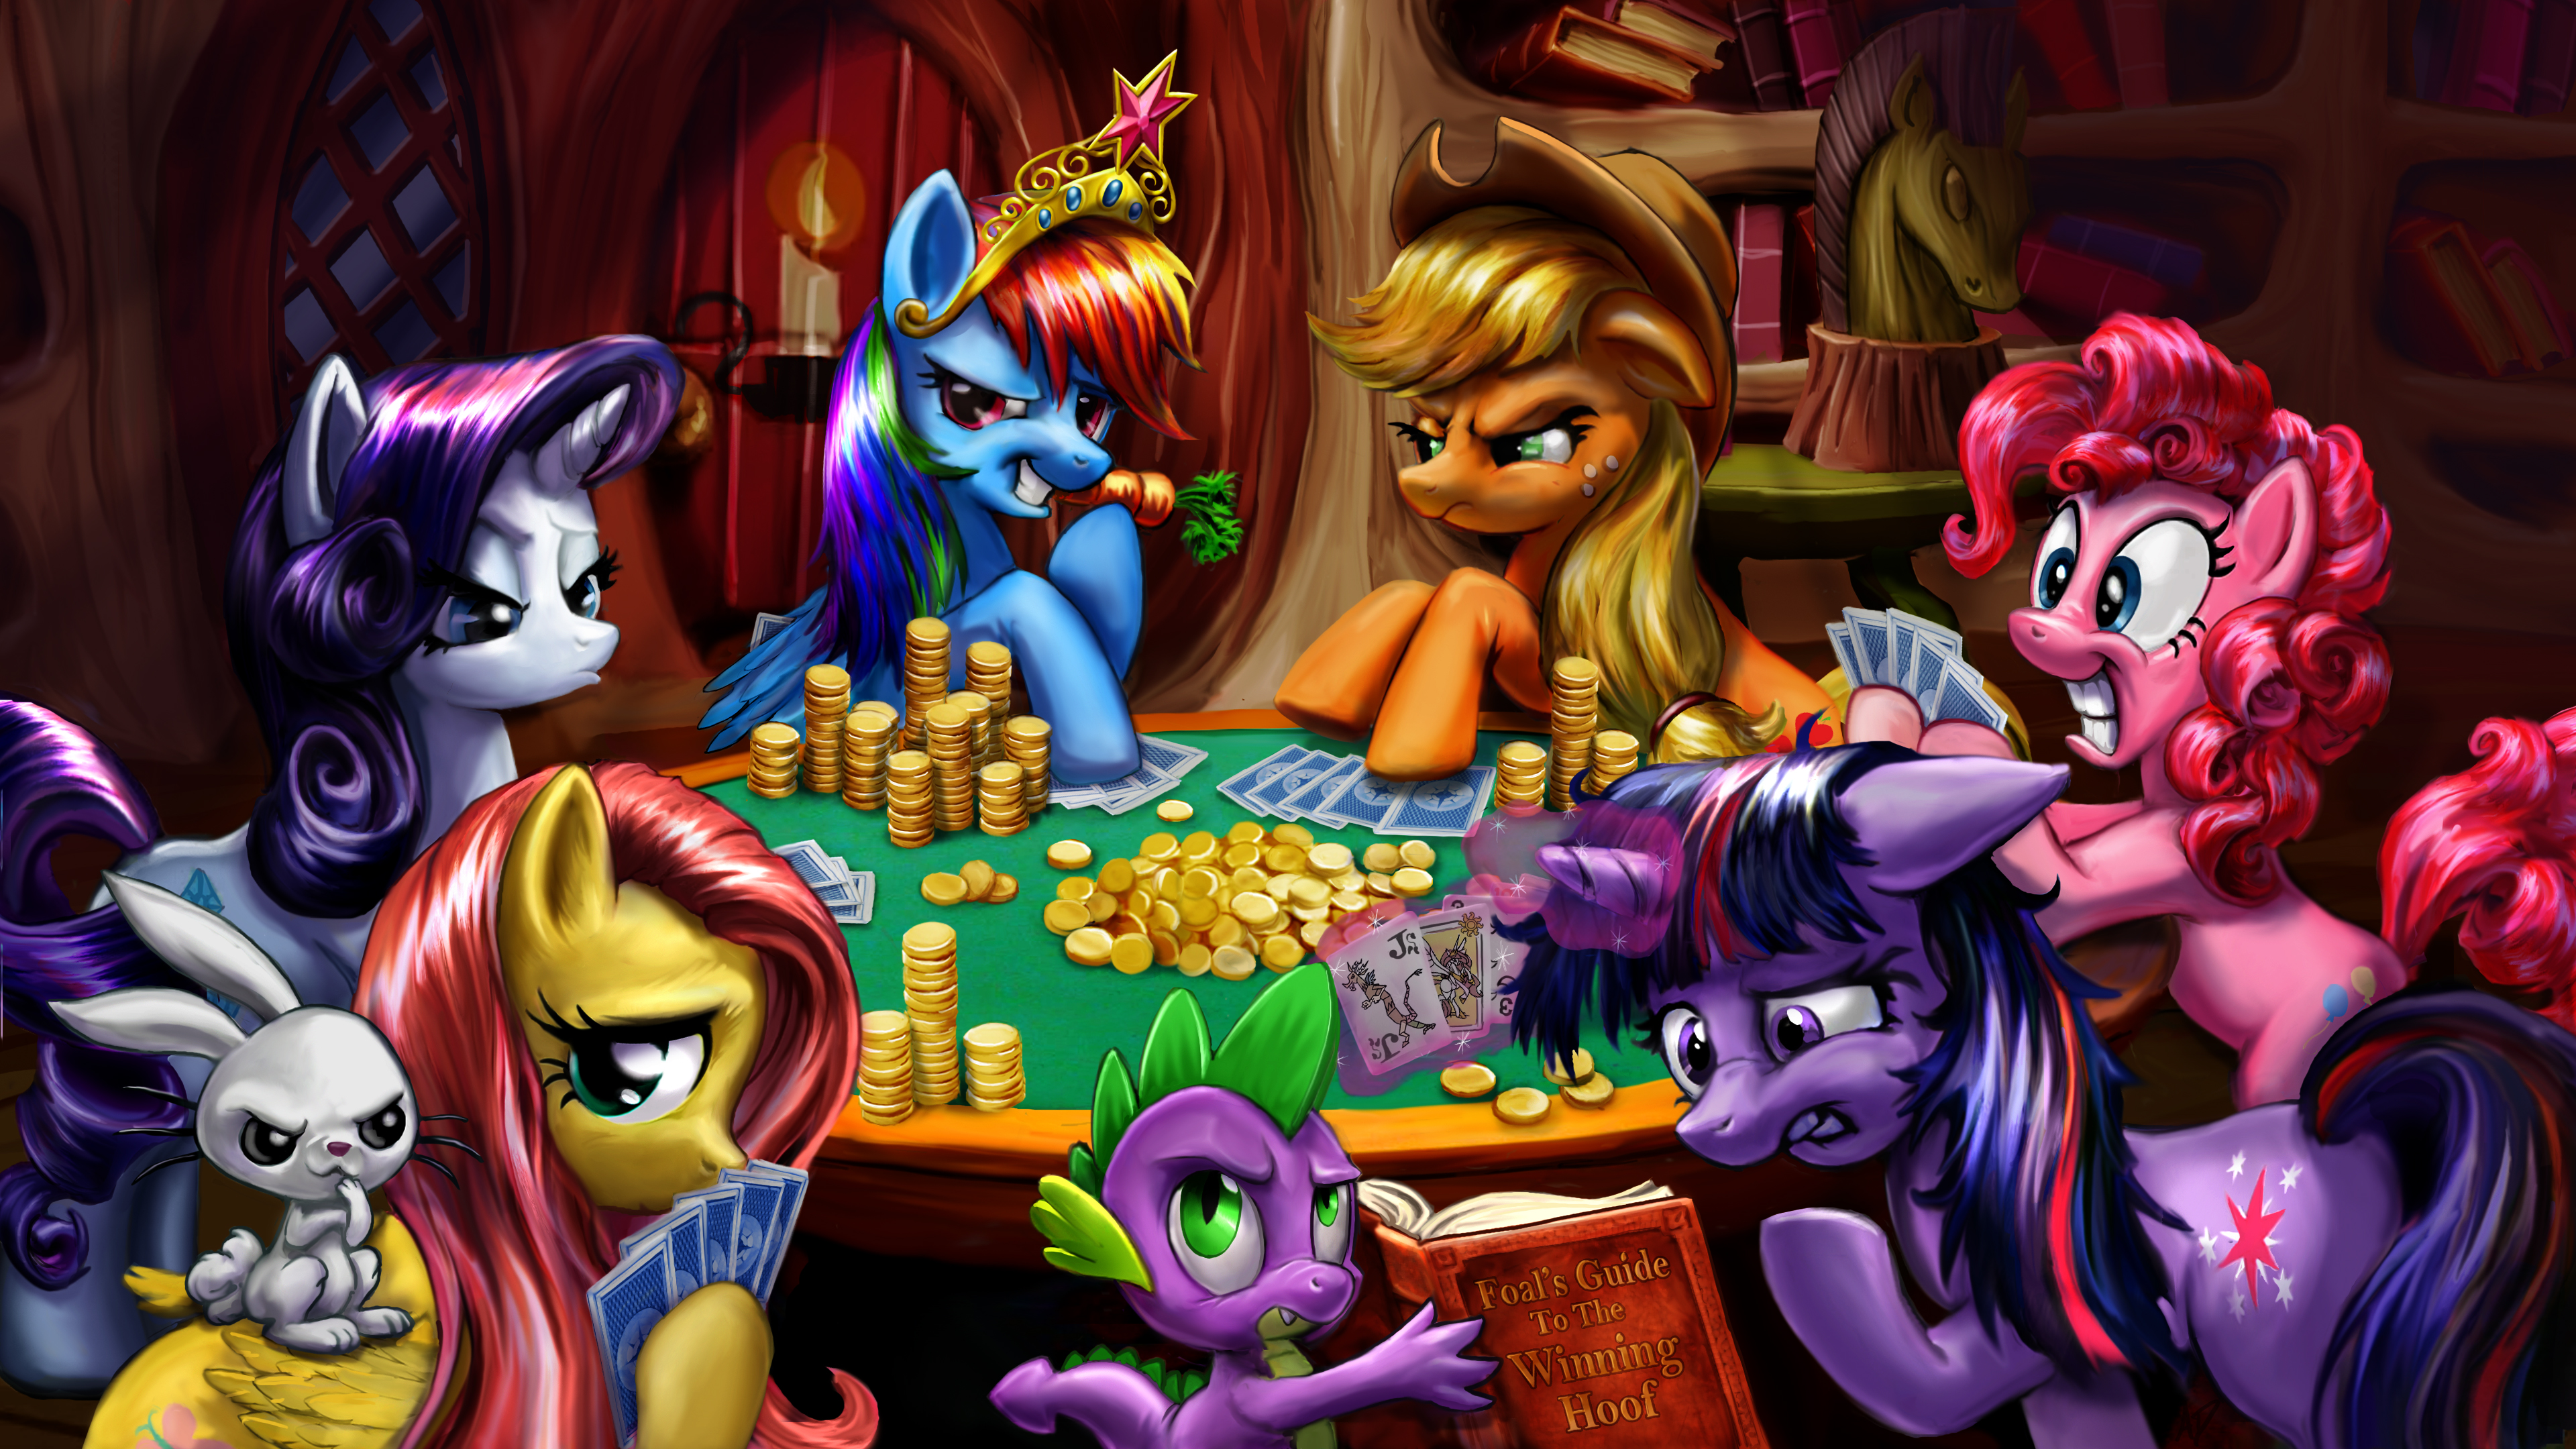 Wallpapers Brony T-Shirts and Apparel for Bronies